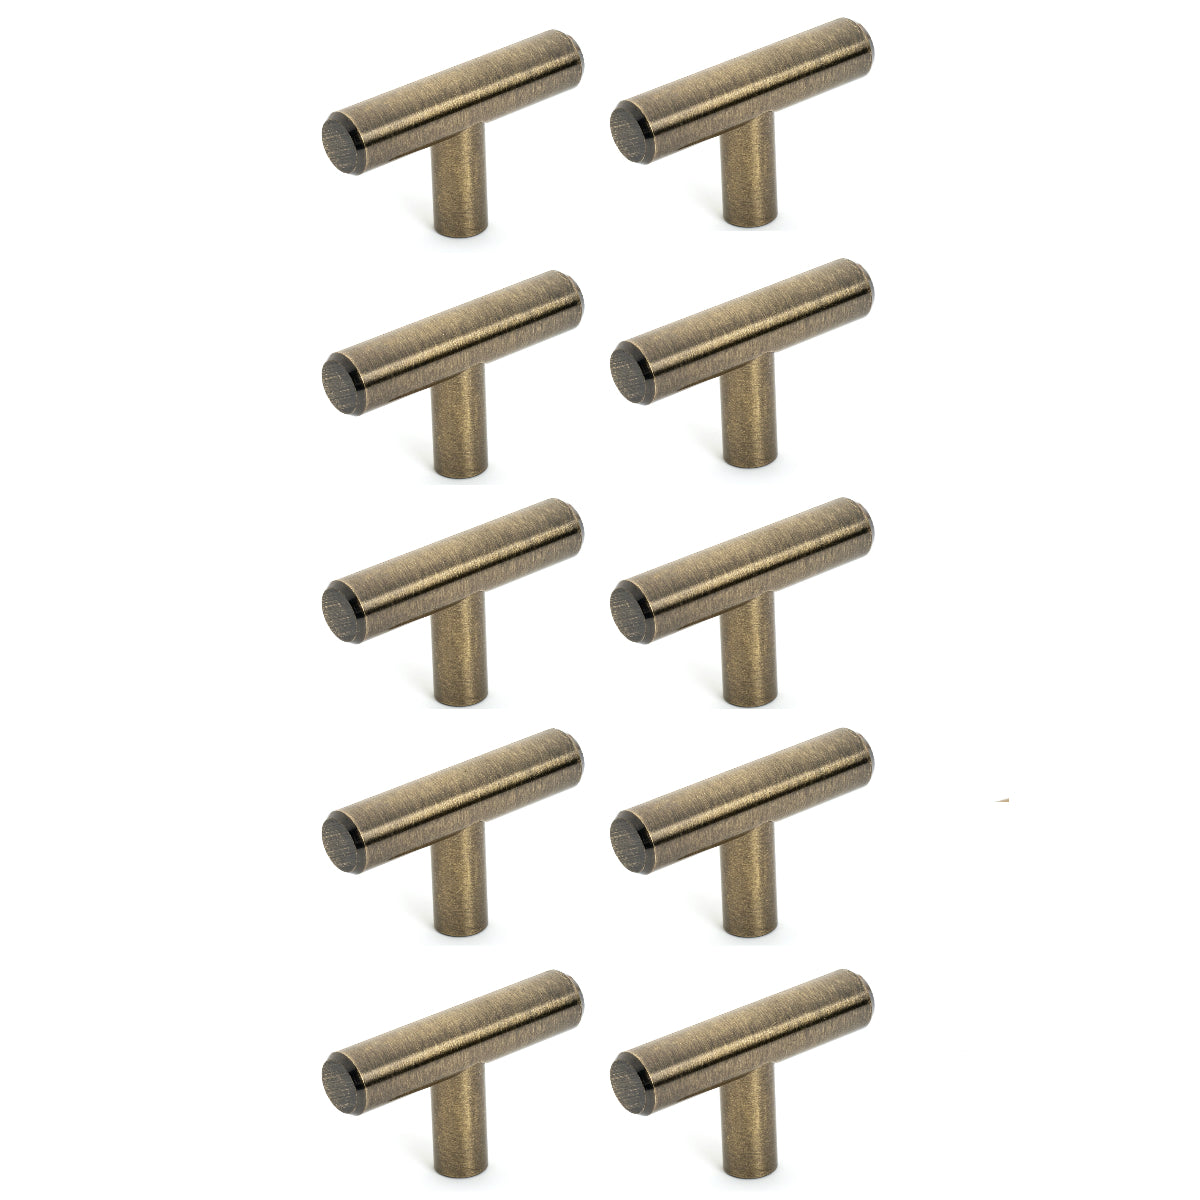 Diversa Antique Brass Euro Style T-Bar Cabinet Knob - 10 PACK